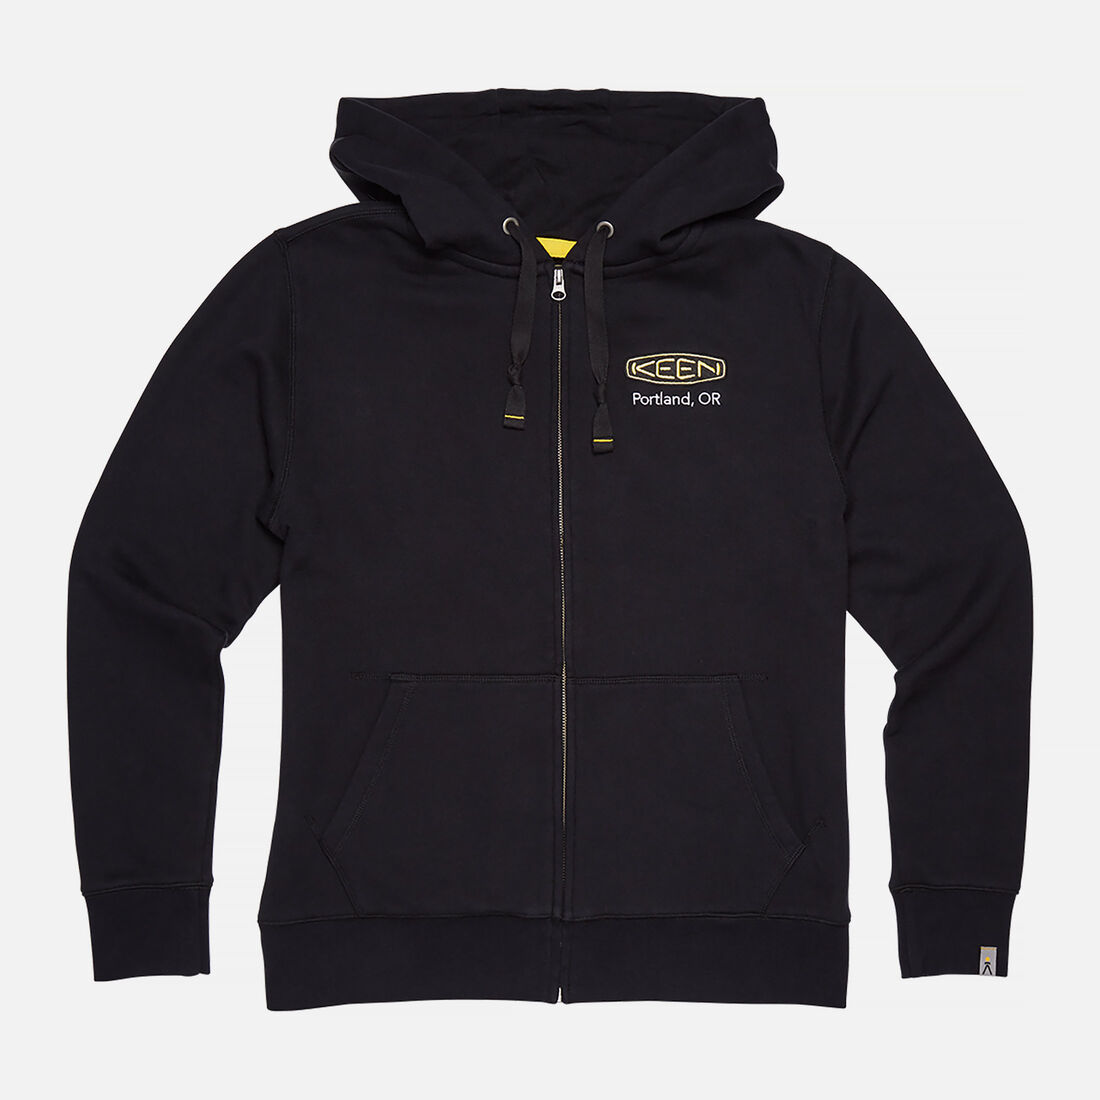 Men's KEEN PDX HOODIE in Black - large view.